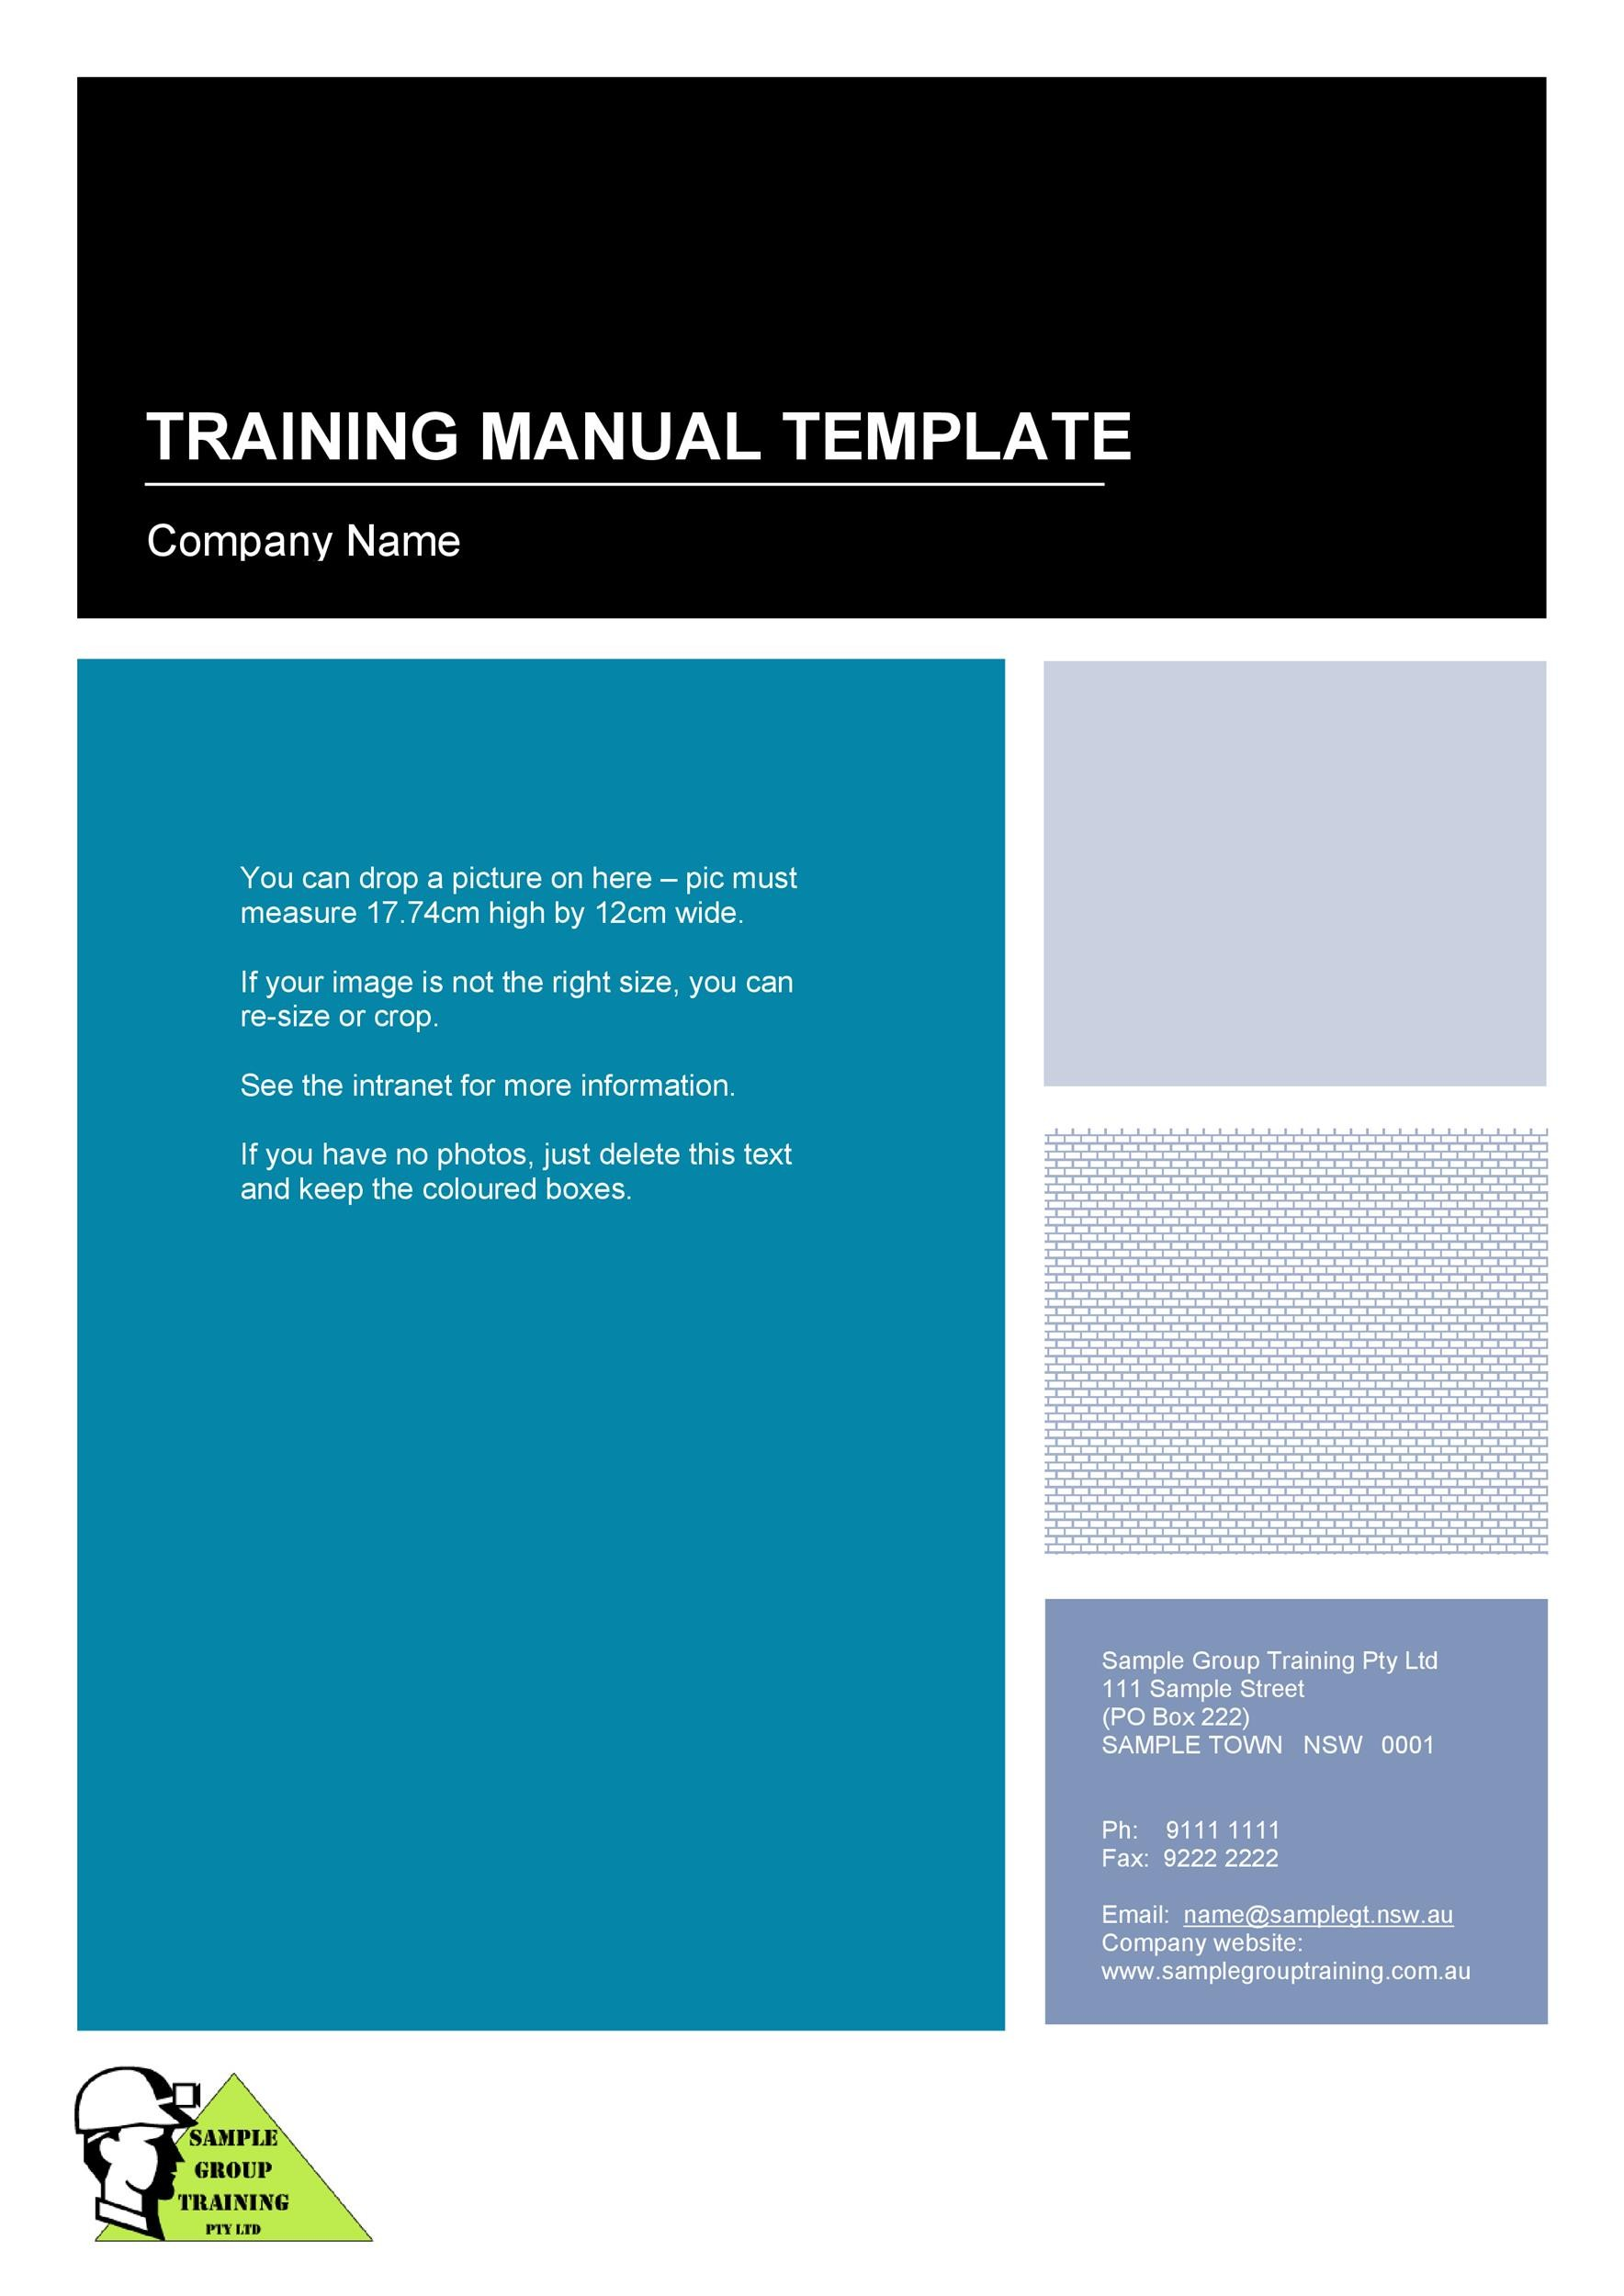 word training manual template user manual template microsoft word templates training manual. Black Bedroom Furniture Sets. Home Design Ideas